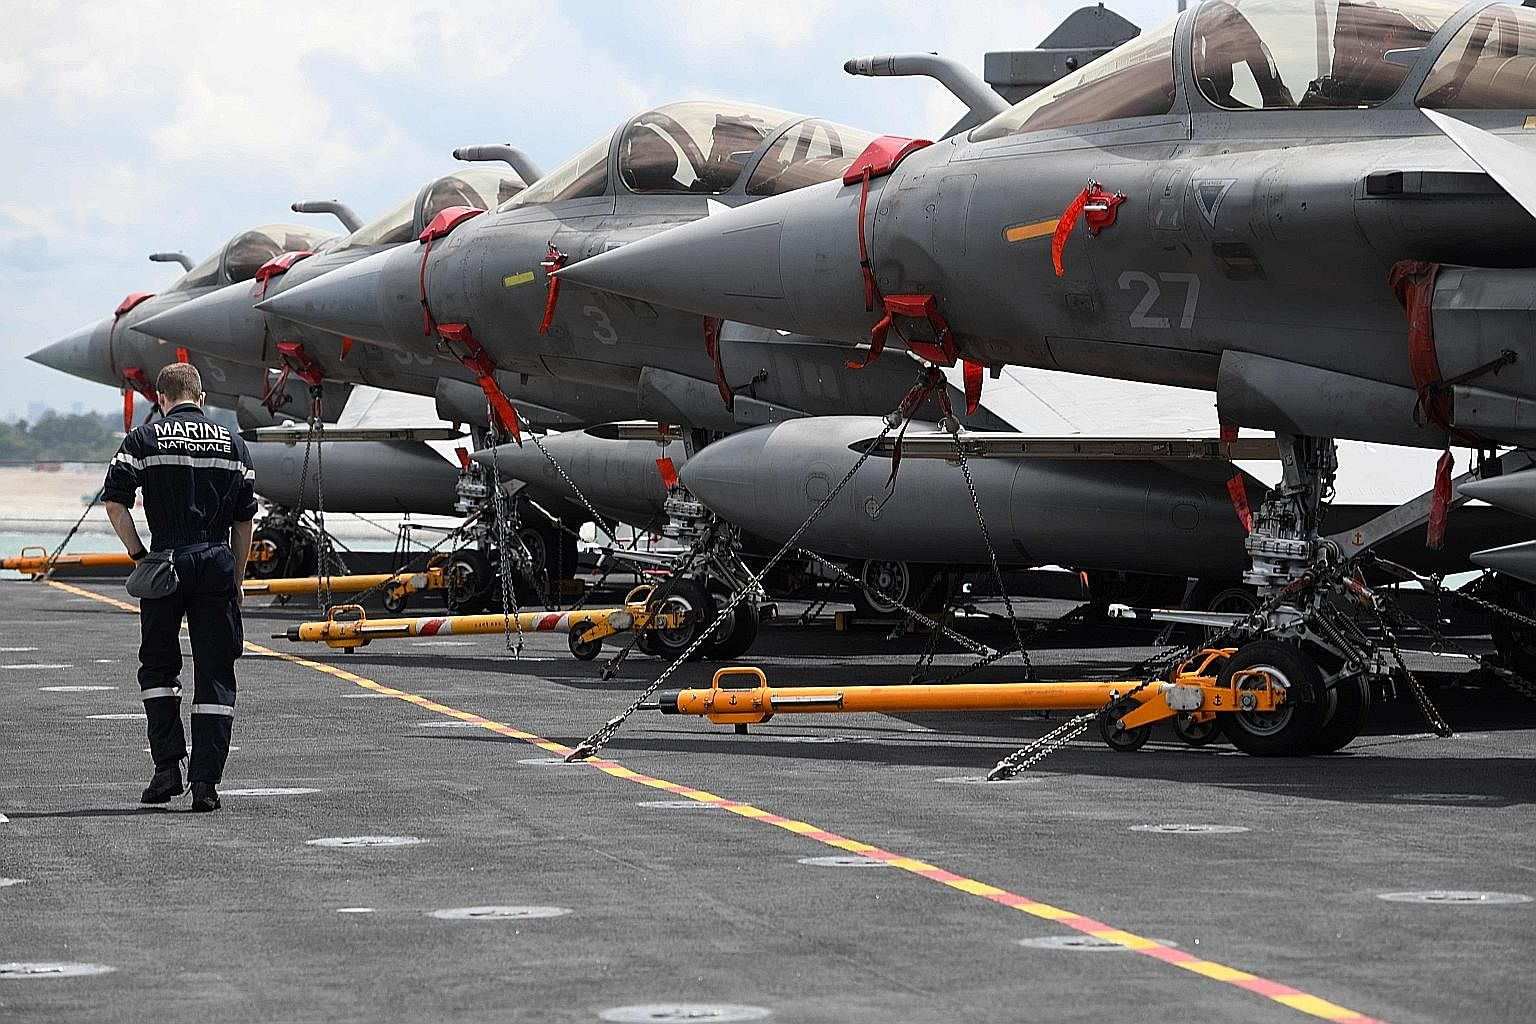 French aircraft carrier Charles de Gaulle at the Changi Naval Base on Tuesday. South-east Asia can reiterate the importance of norms such as freedom of navigation in the South China Sea, to help manage US-China competition, says the writer.